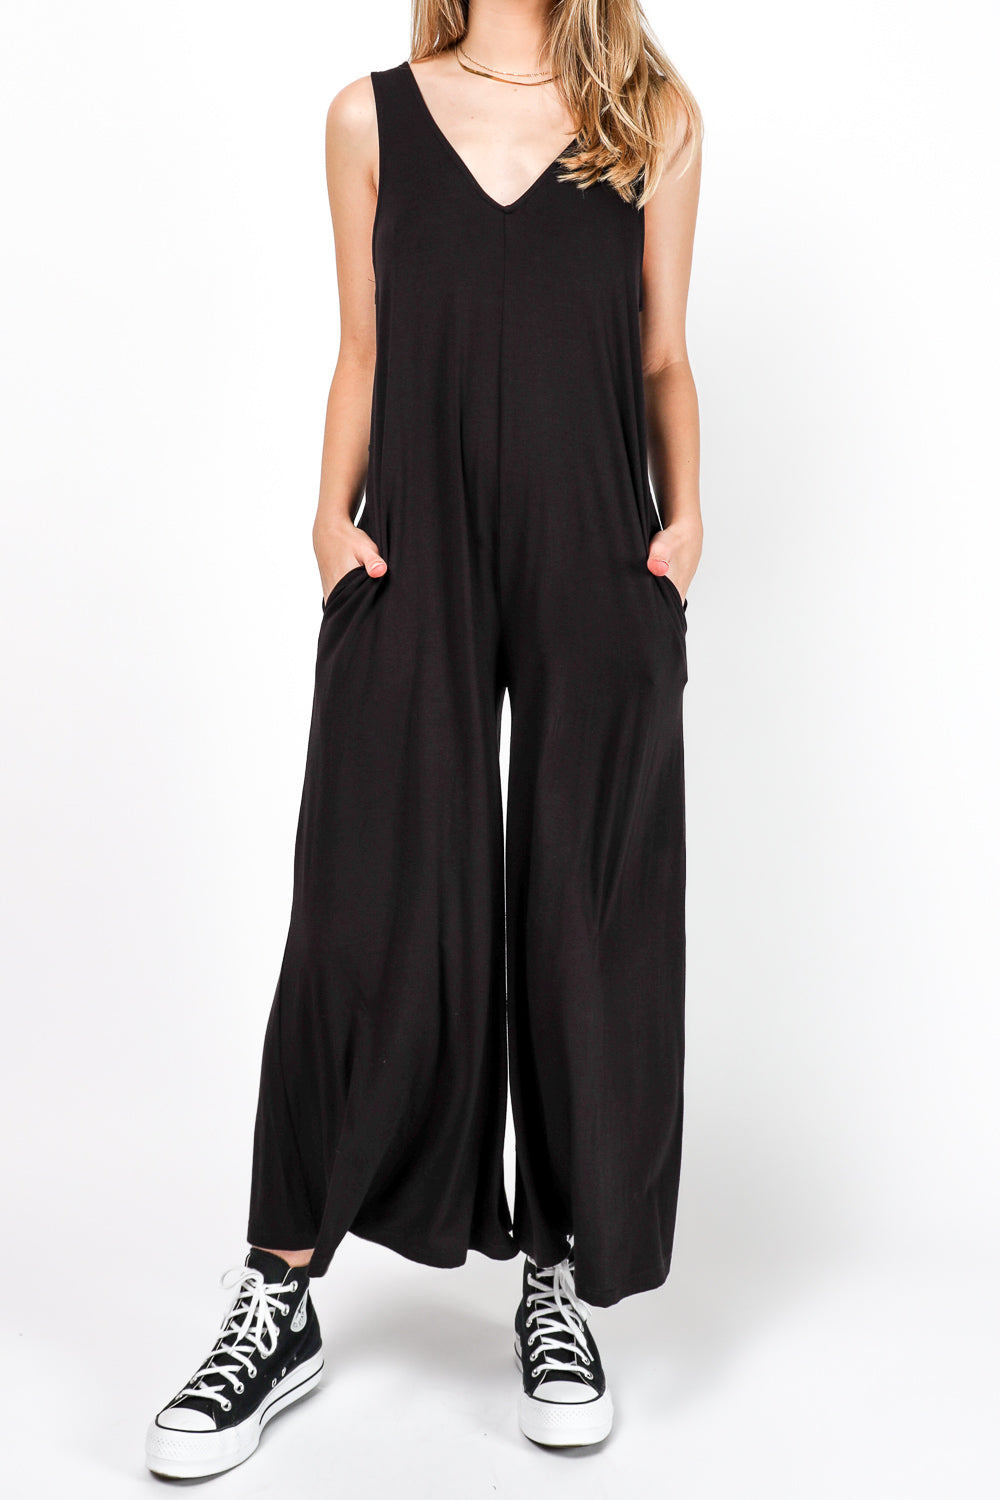 On Replay Jumpsuit